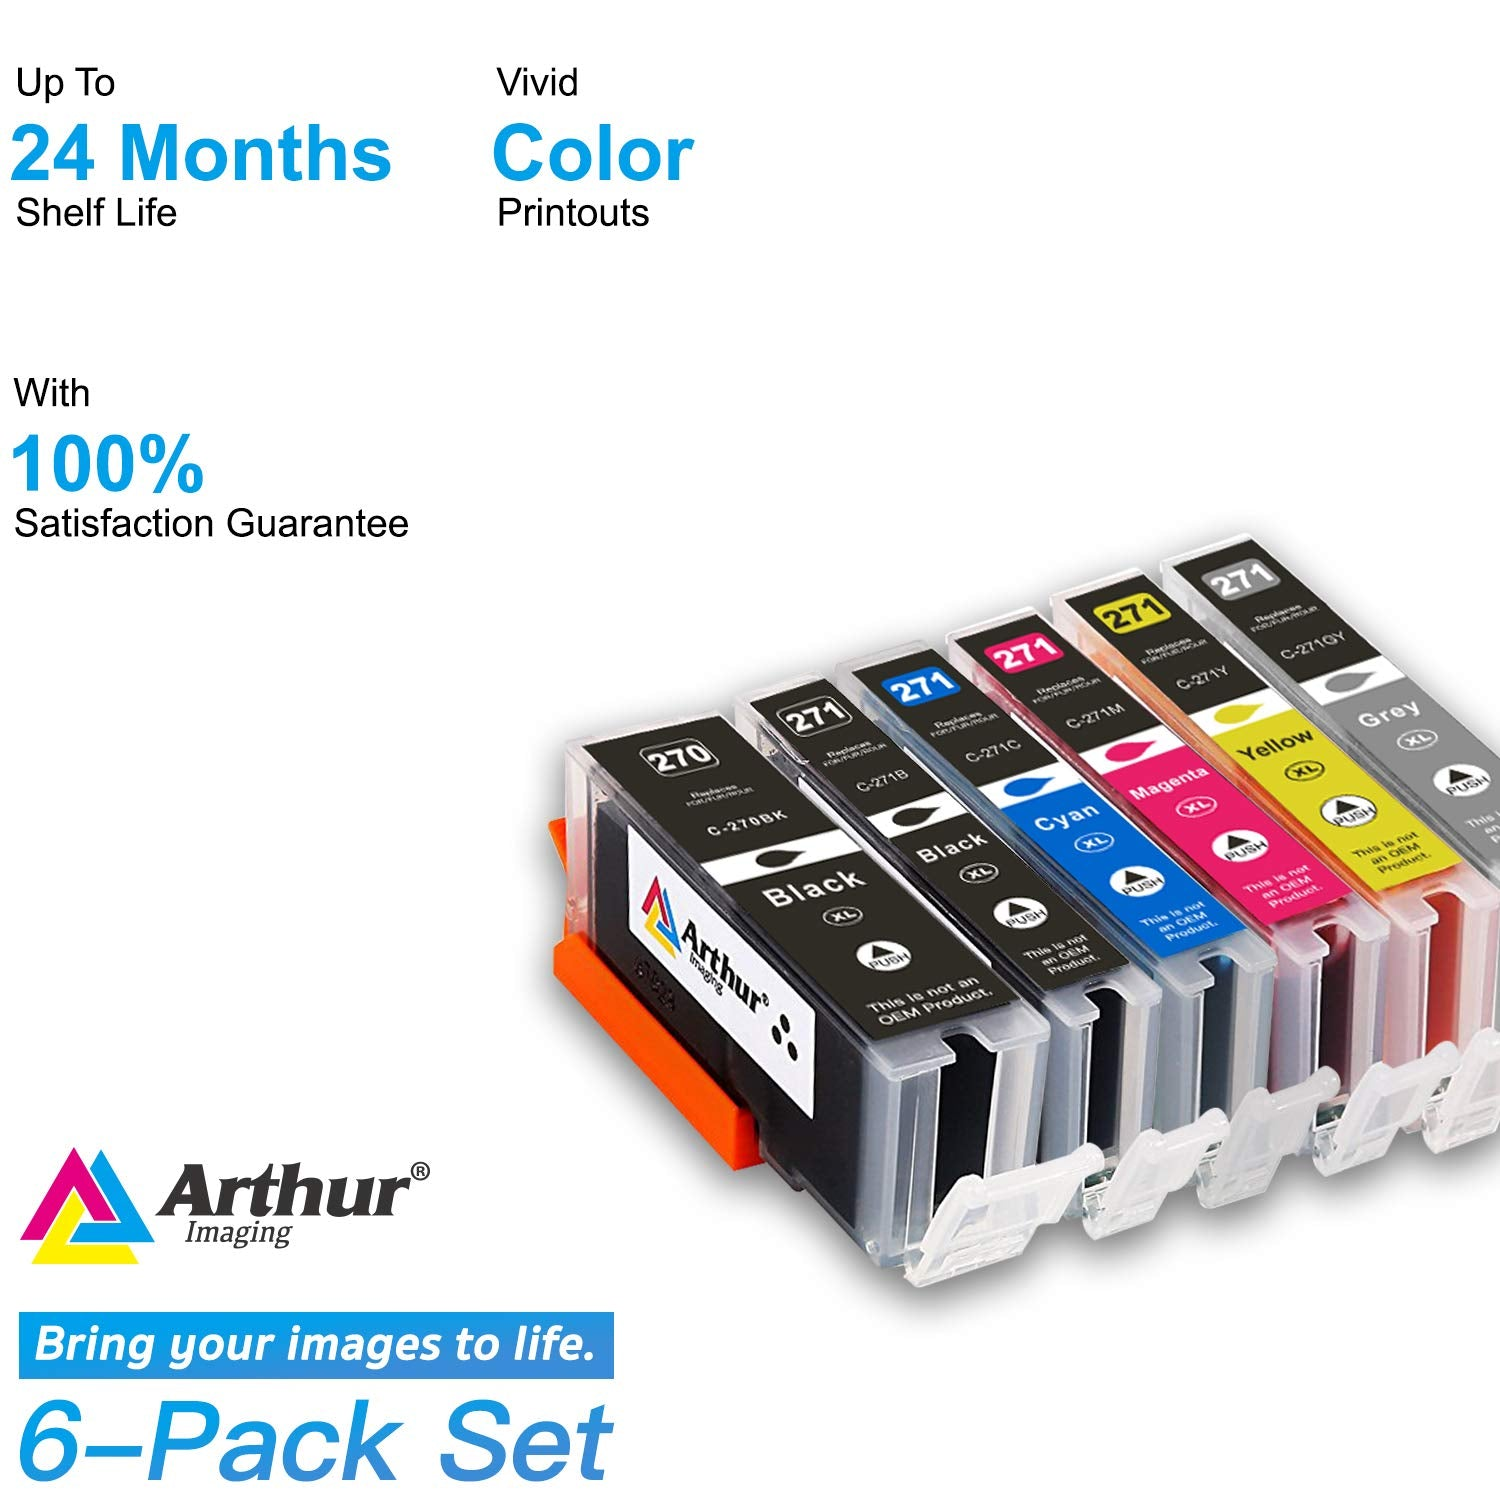 Arthur Imaging Compatible Ink Cartridge Replacement for Canon PGI-270XL CLI-271XL (1 Large Black, 1 Small Black, 1 Cyan, 1 Yellow, 1 Magenta, 1 Gray, 6-Pack)